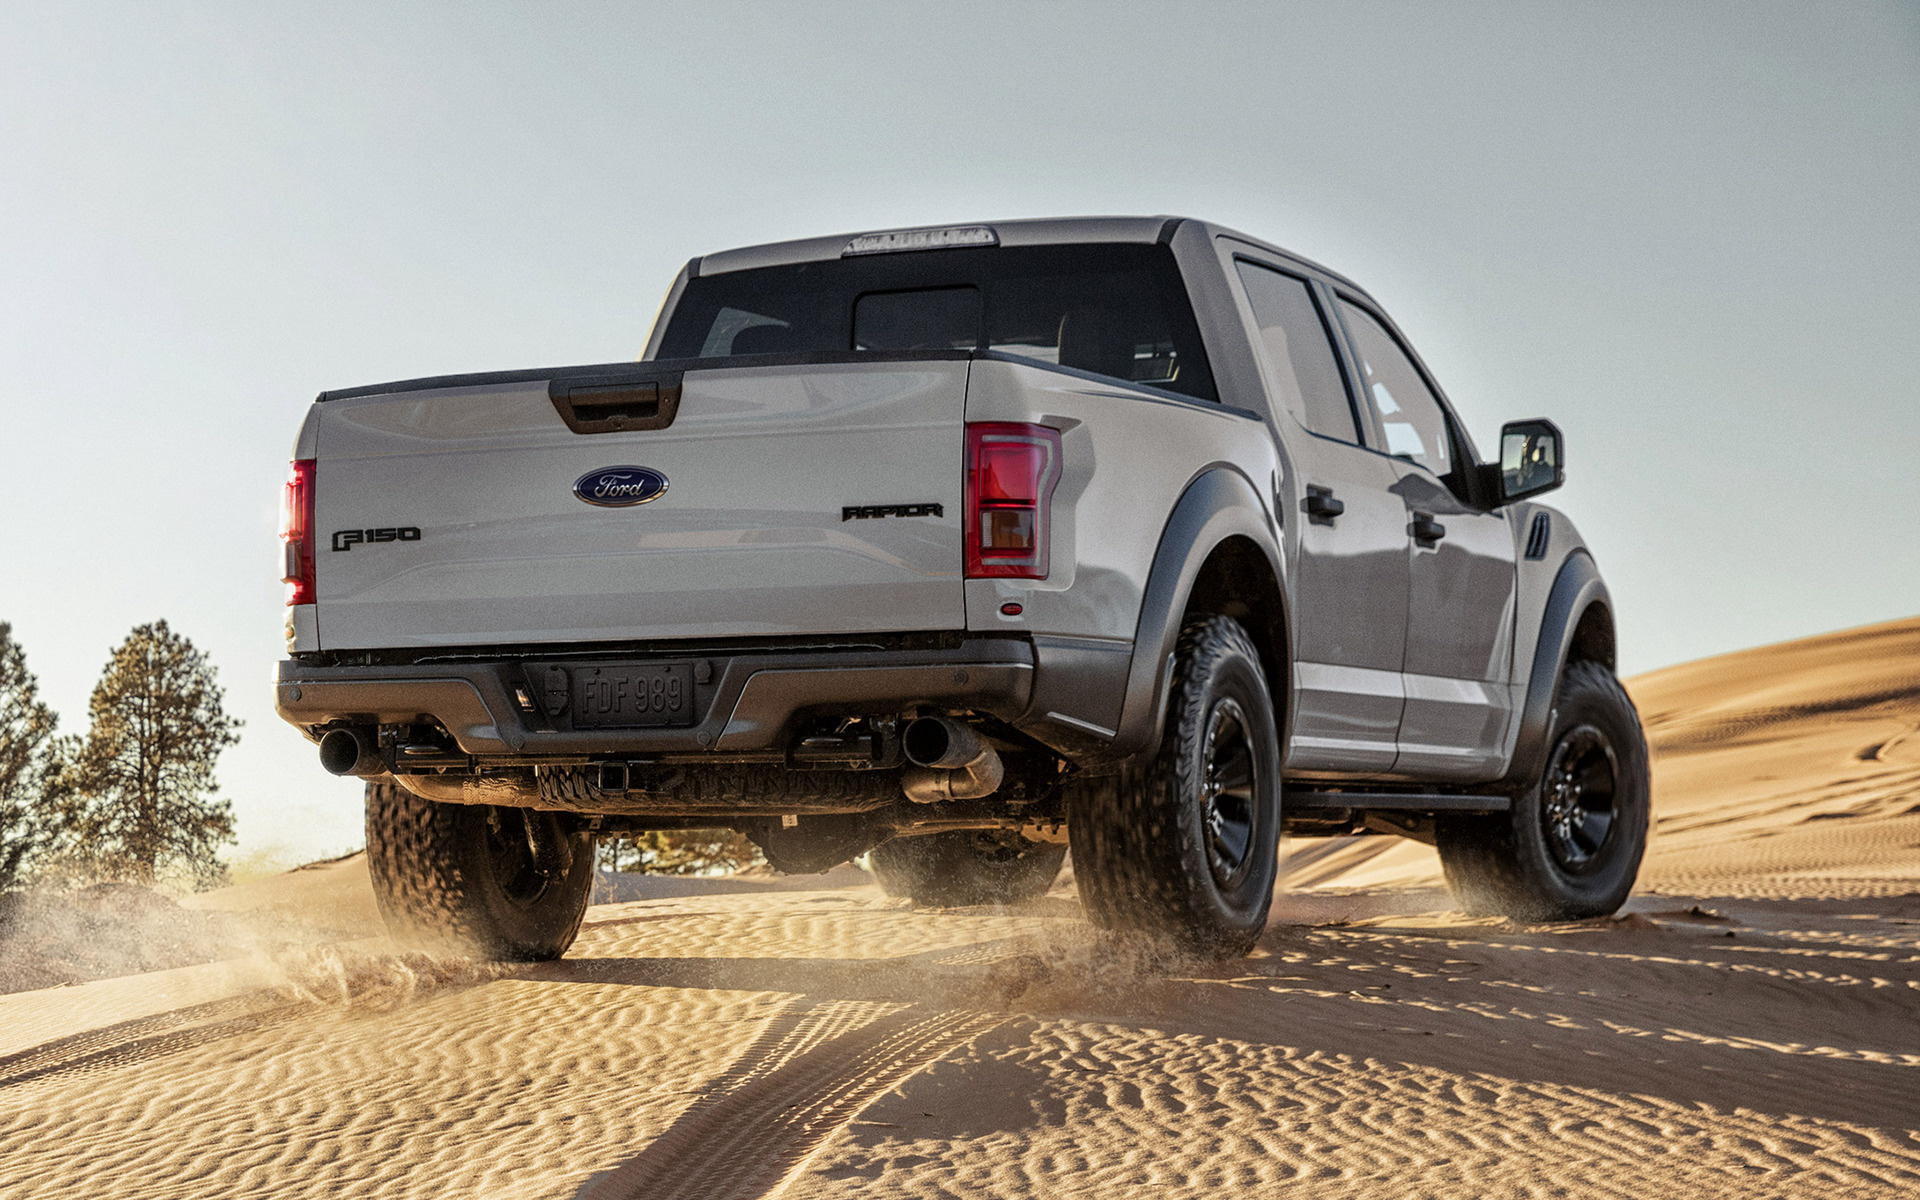 2017 BMW 6 Series >> 2017 Ford F-150 Raptor SuperCrew - Wallpapers and HD Images | Car Pixel